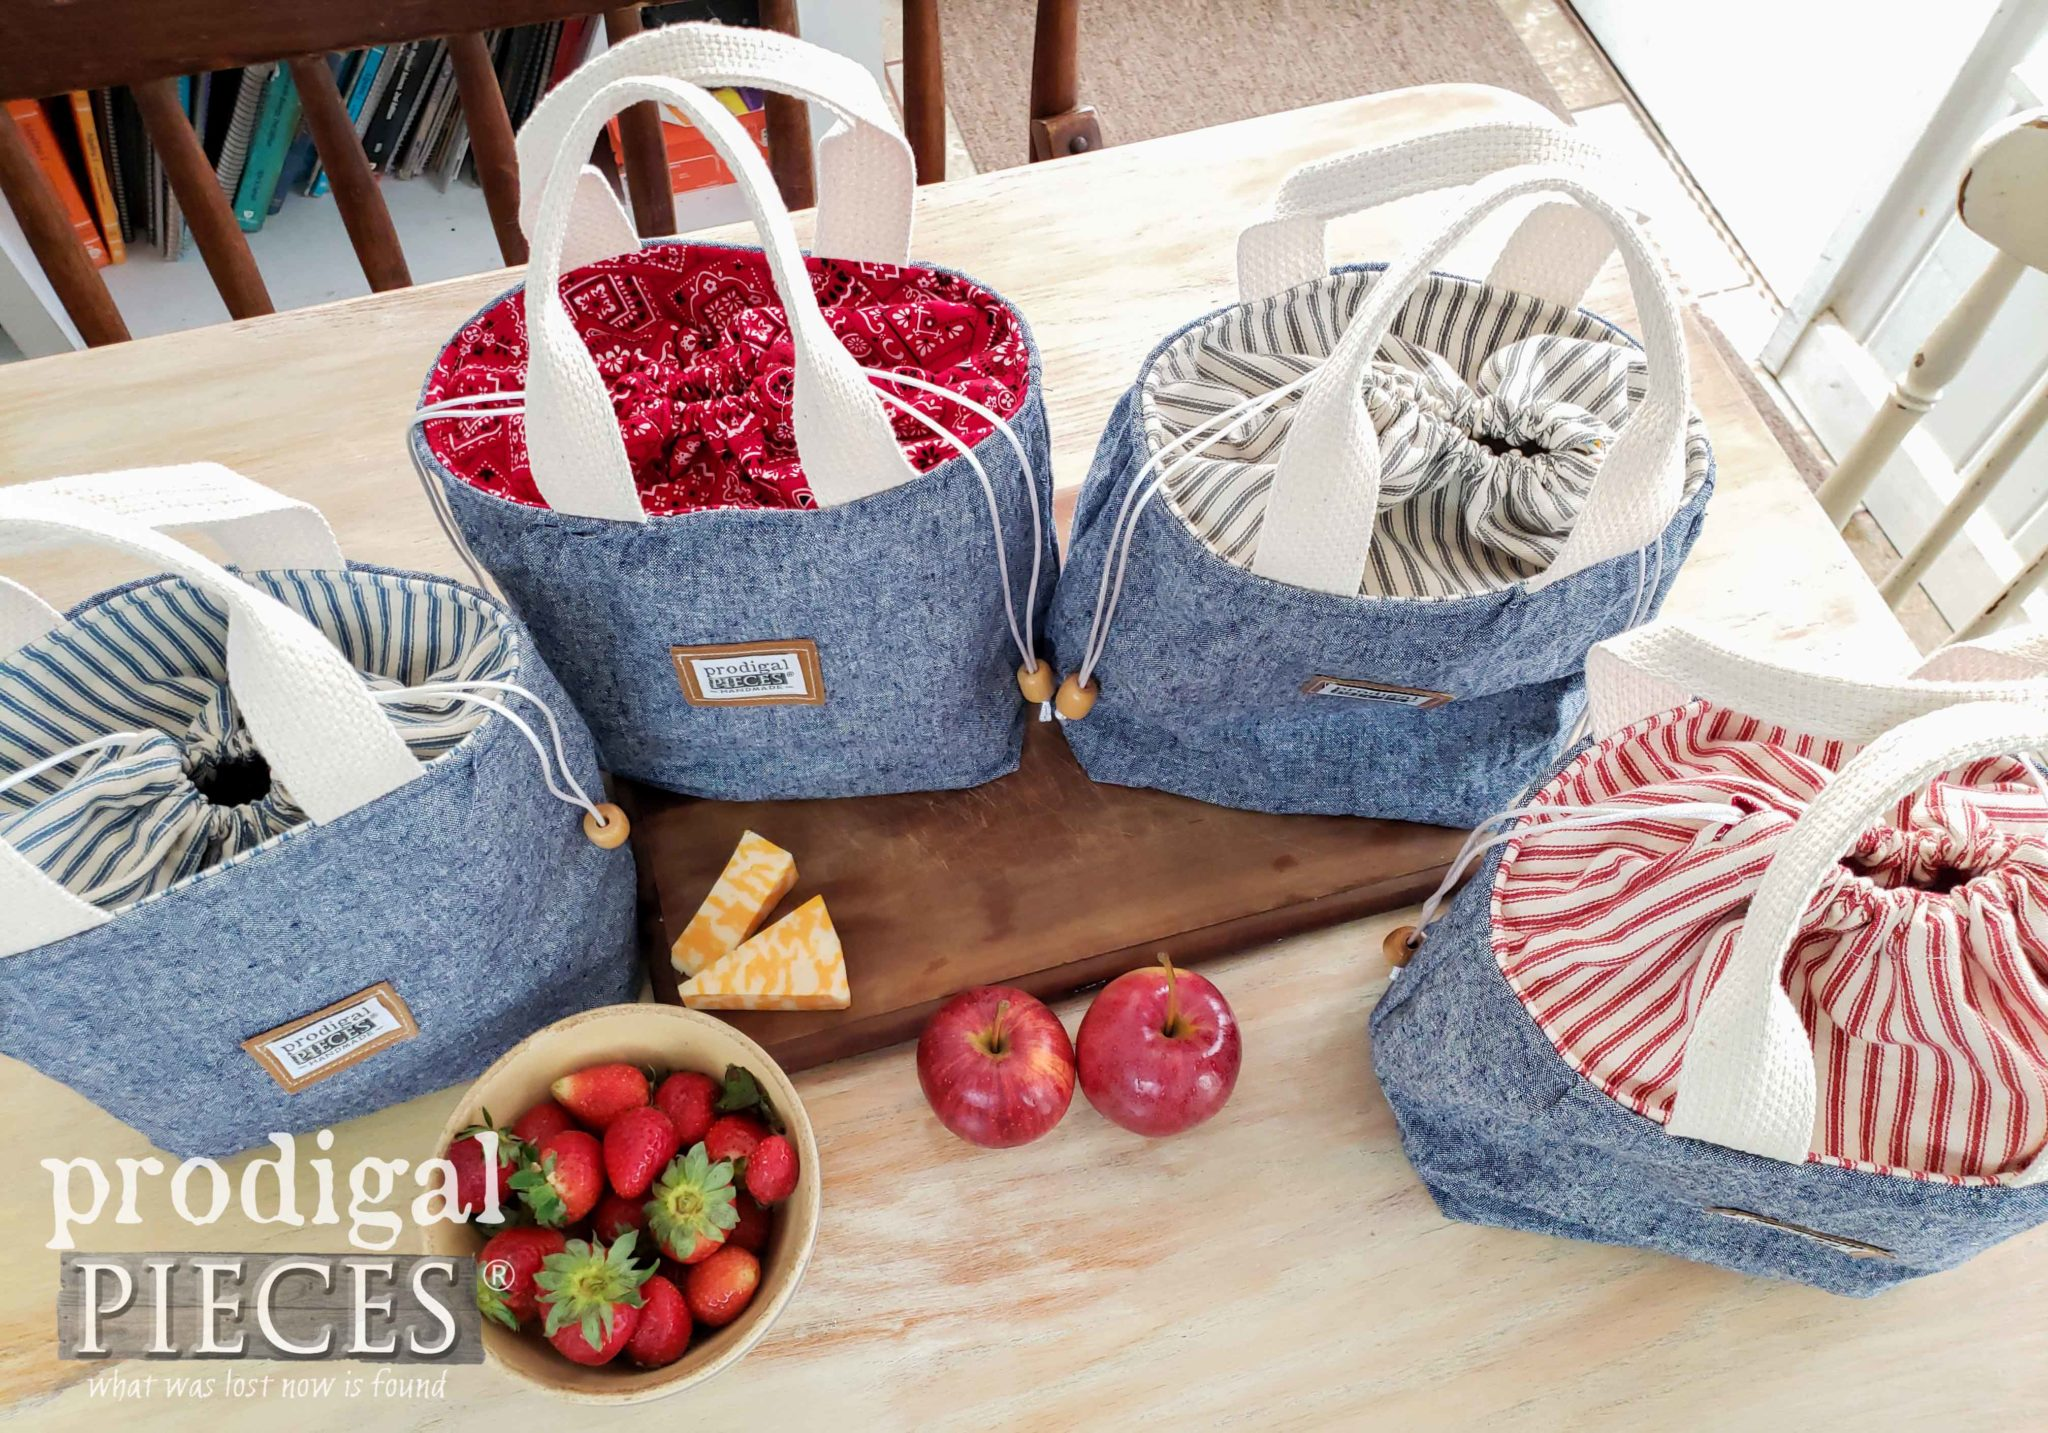 Denim Linen Lunch Bag Assortment by Larissa of Prodigal Pieces | prodigalpieces.com #prodigalpieces #handmade #fashion #diy #sewing #home